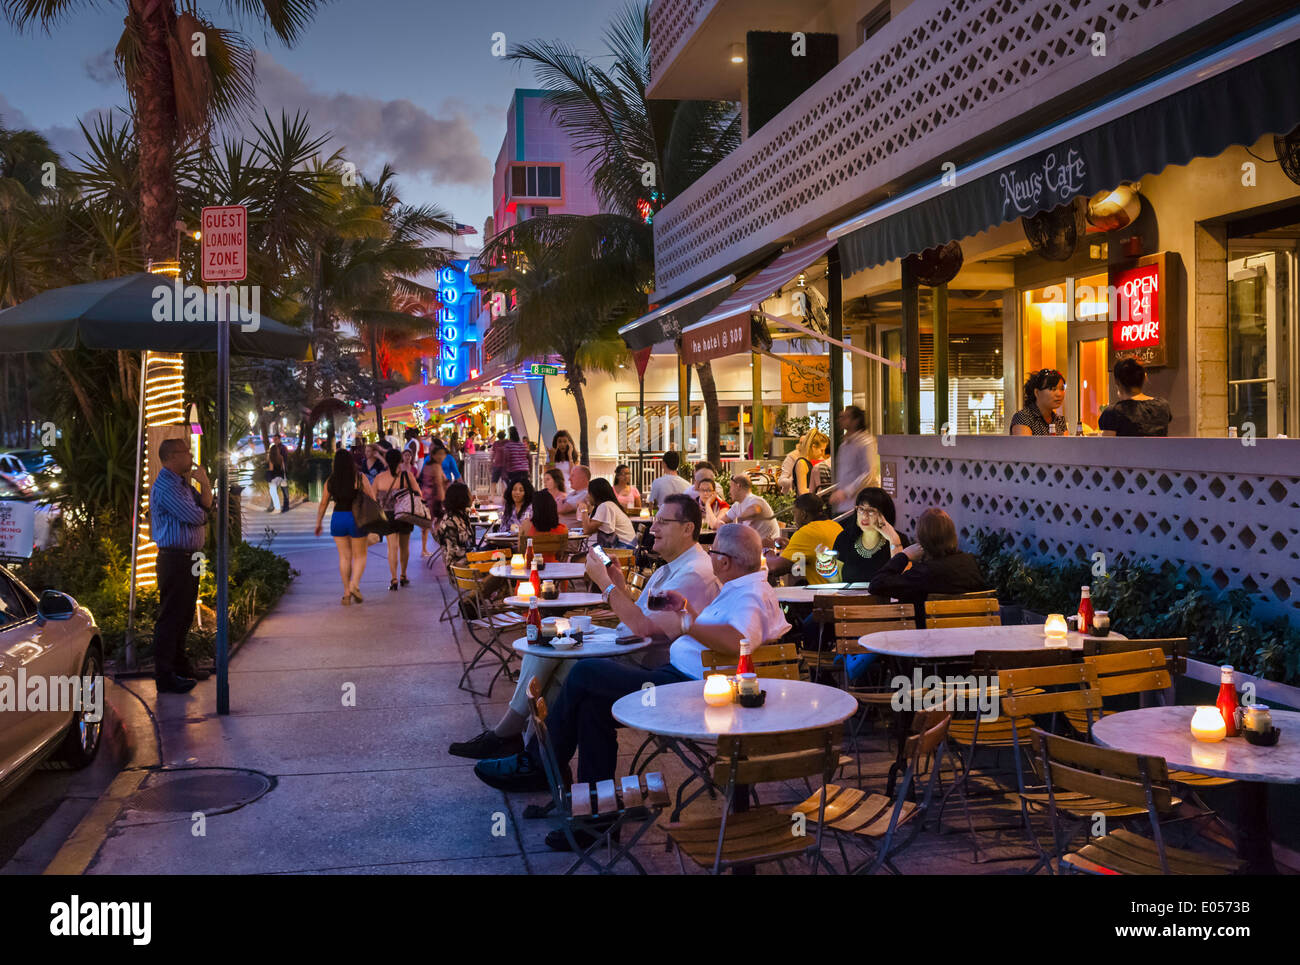 News Cafe Ocean Drive Miami Beach Fl